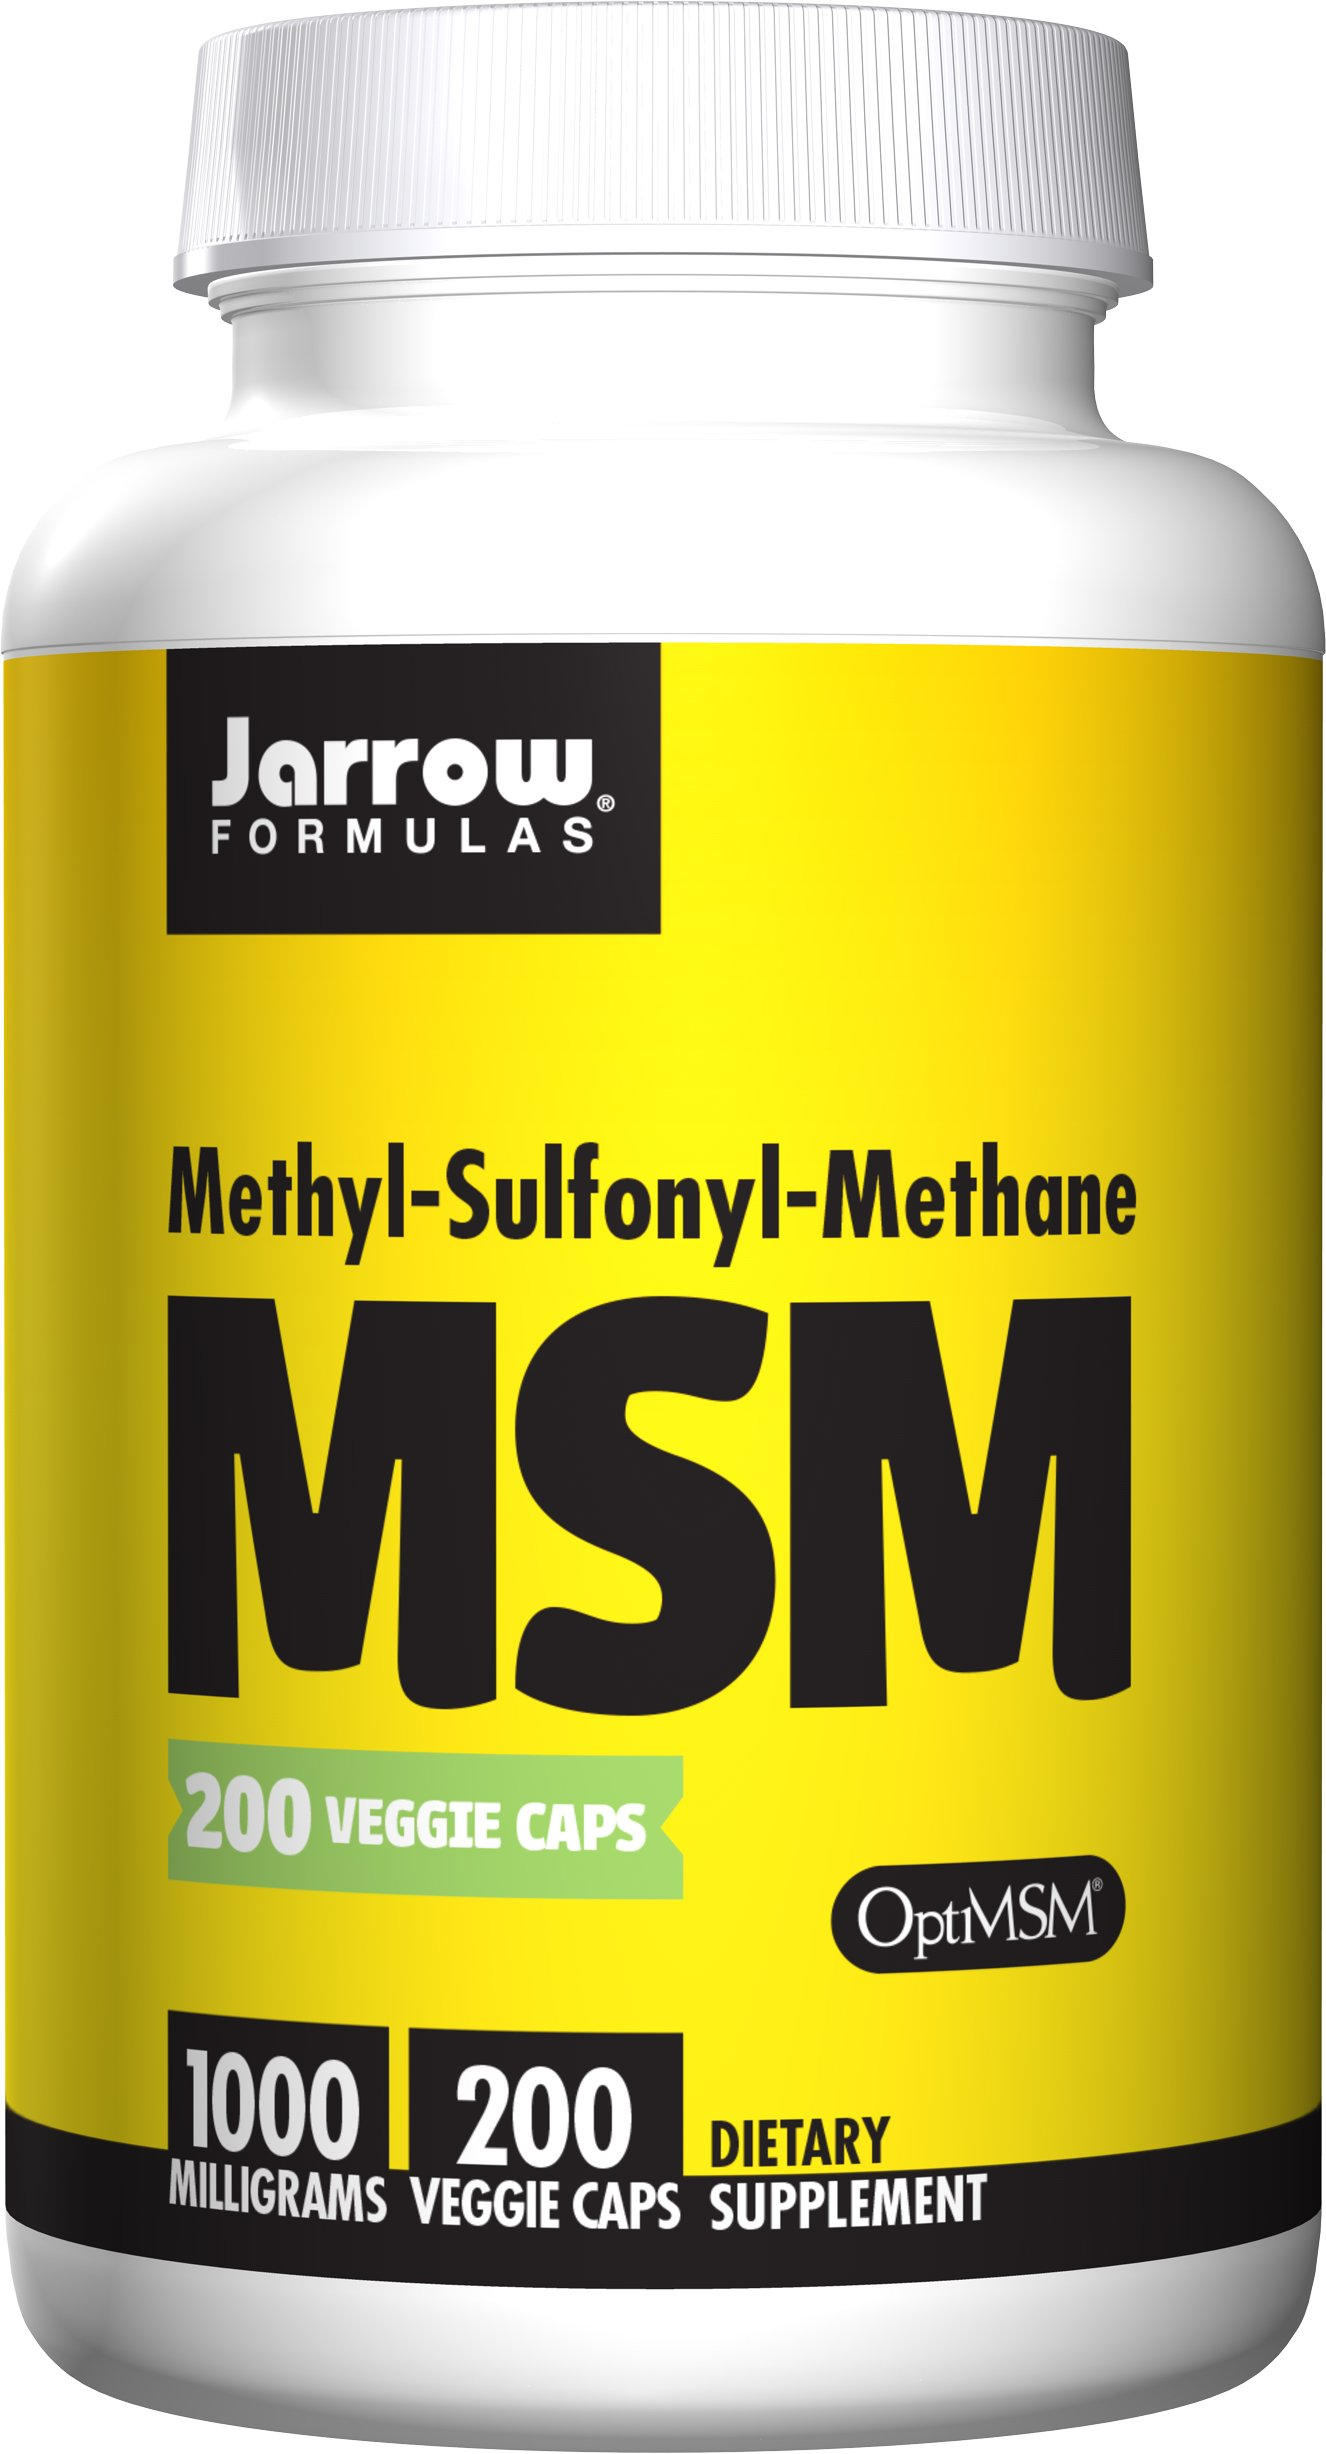 Jarrow Formulas MSM, A Bioavailable Source of Sulfur, with Antioxidant and Protein-Building Functions*, 1000 mg, 200 Veggie Capsules by Jarrow Formulas